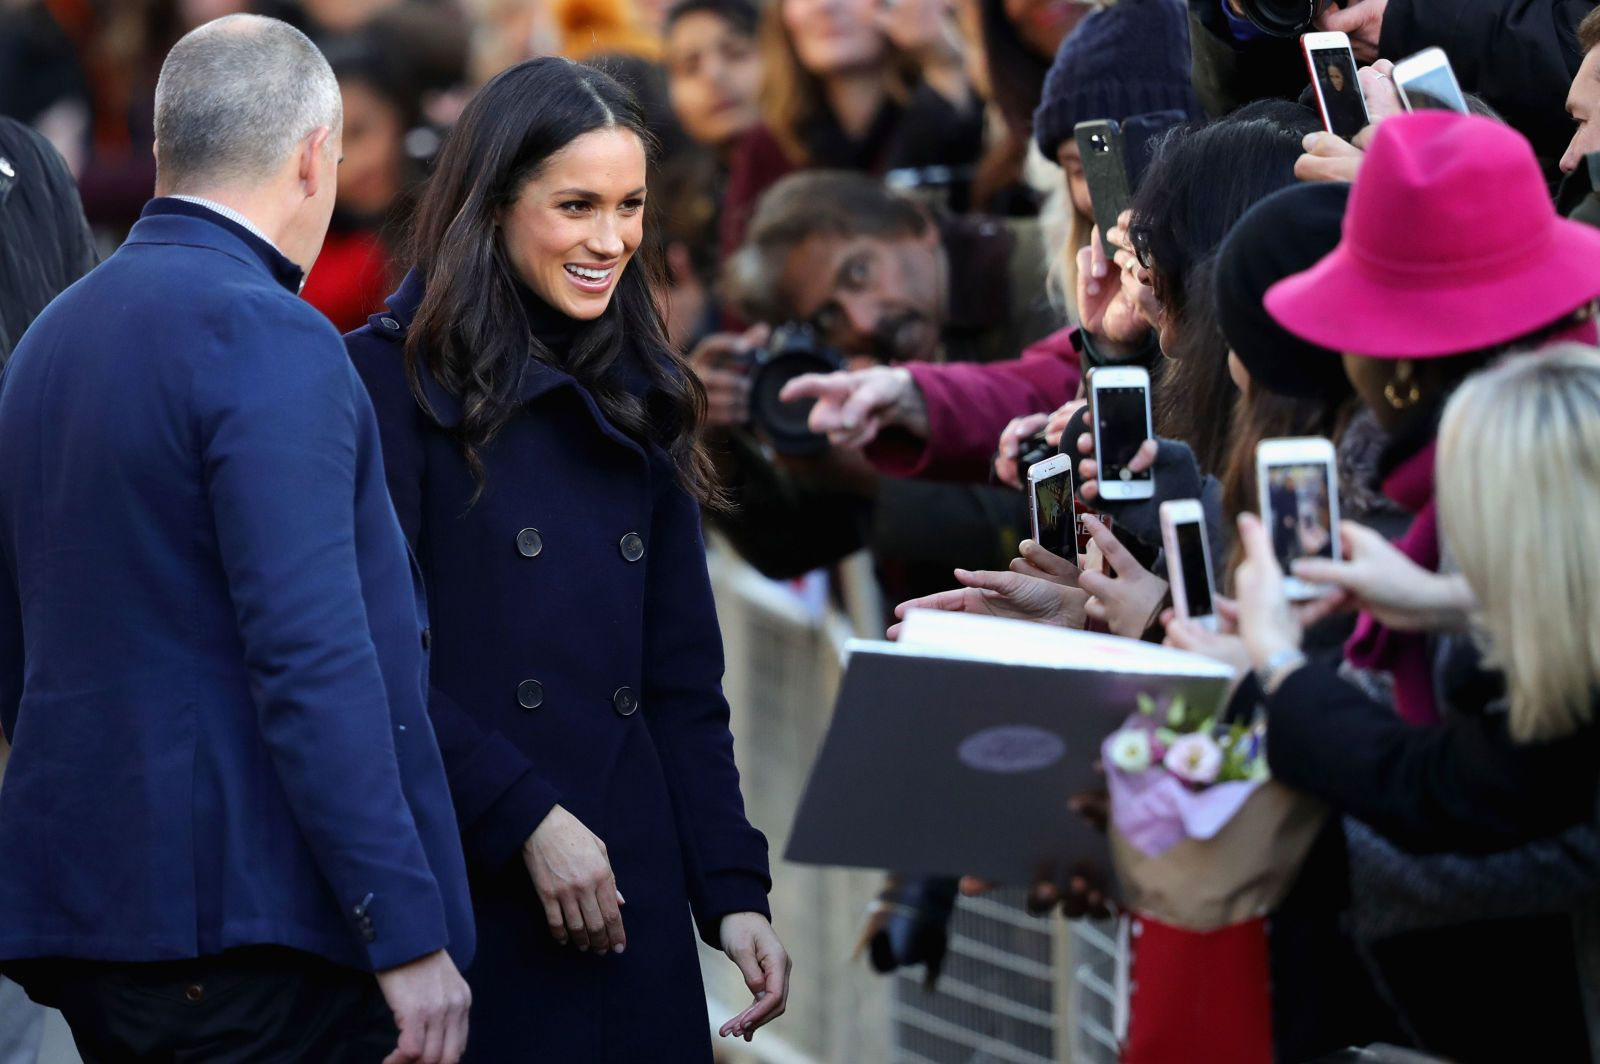 A Body-Language Expert Breaks Down Meghan Markle and Prince Harrys Most Awkward Moment